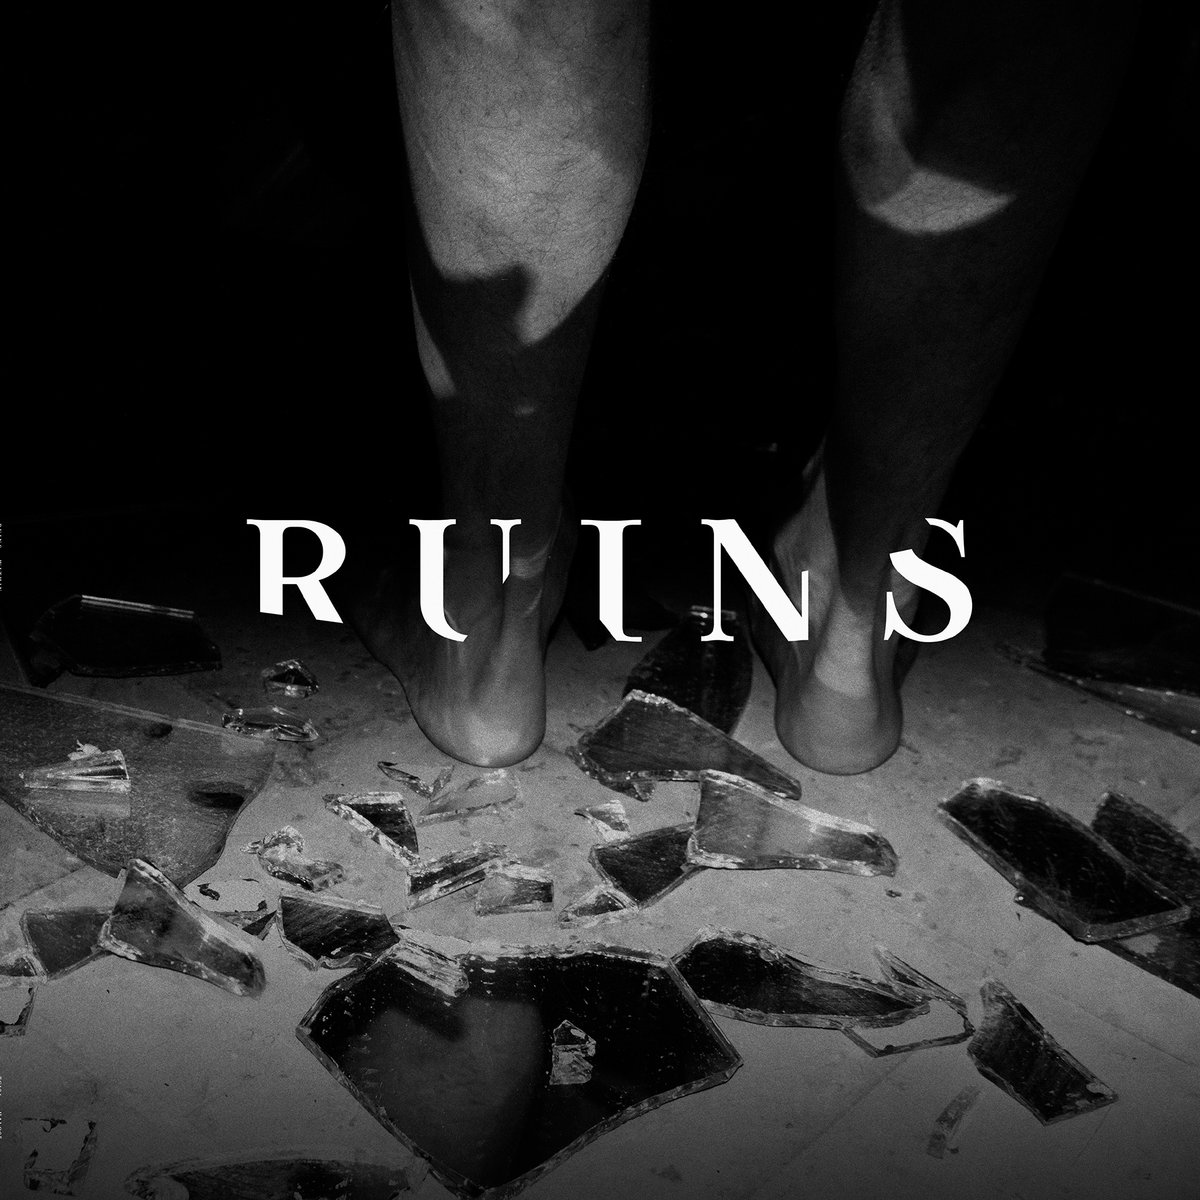 Ruins - Shiver @ 'Within' album (bielefeld, metal)